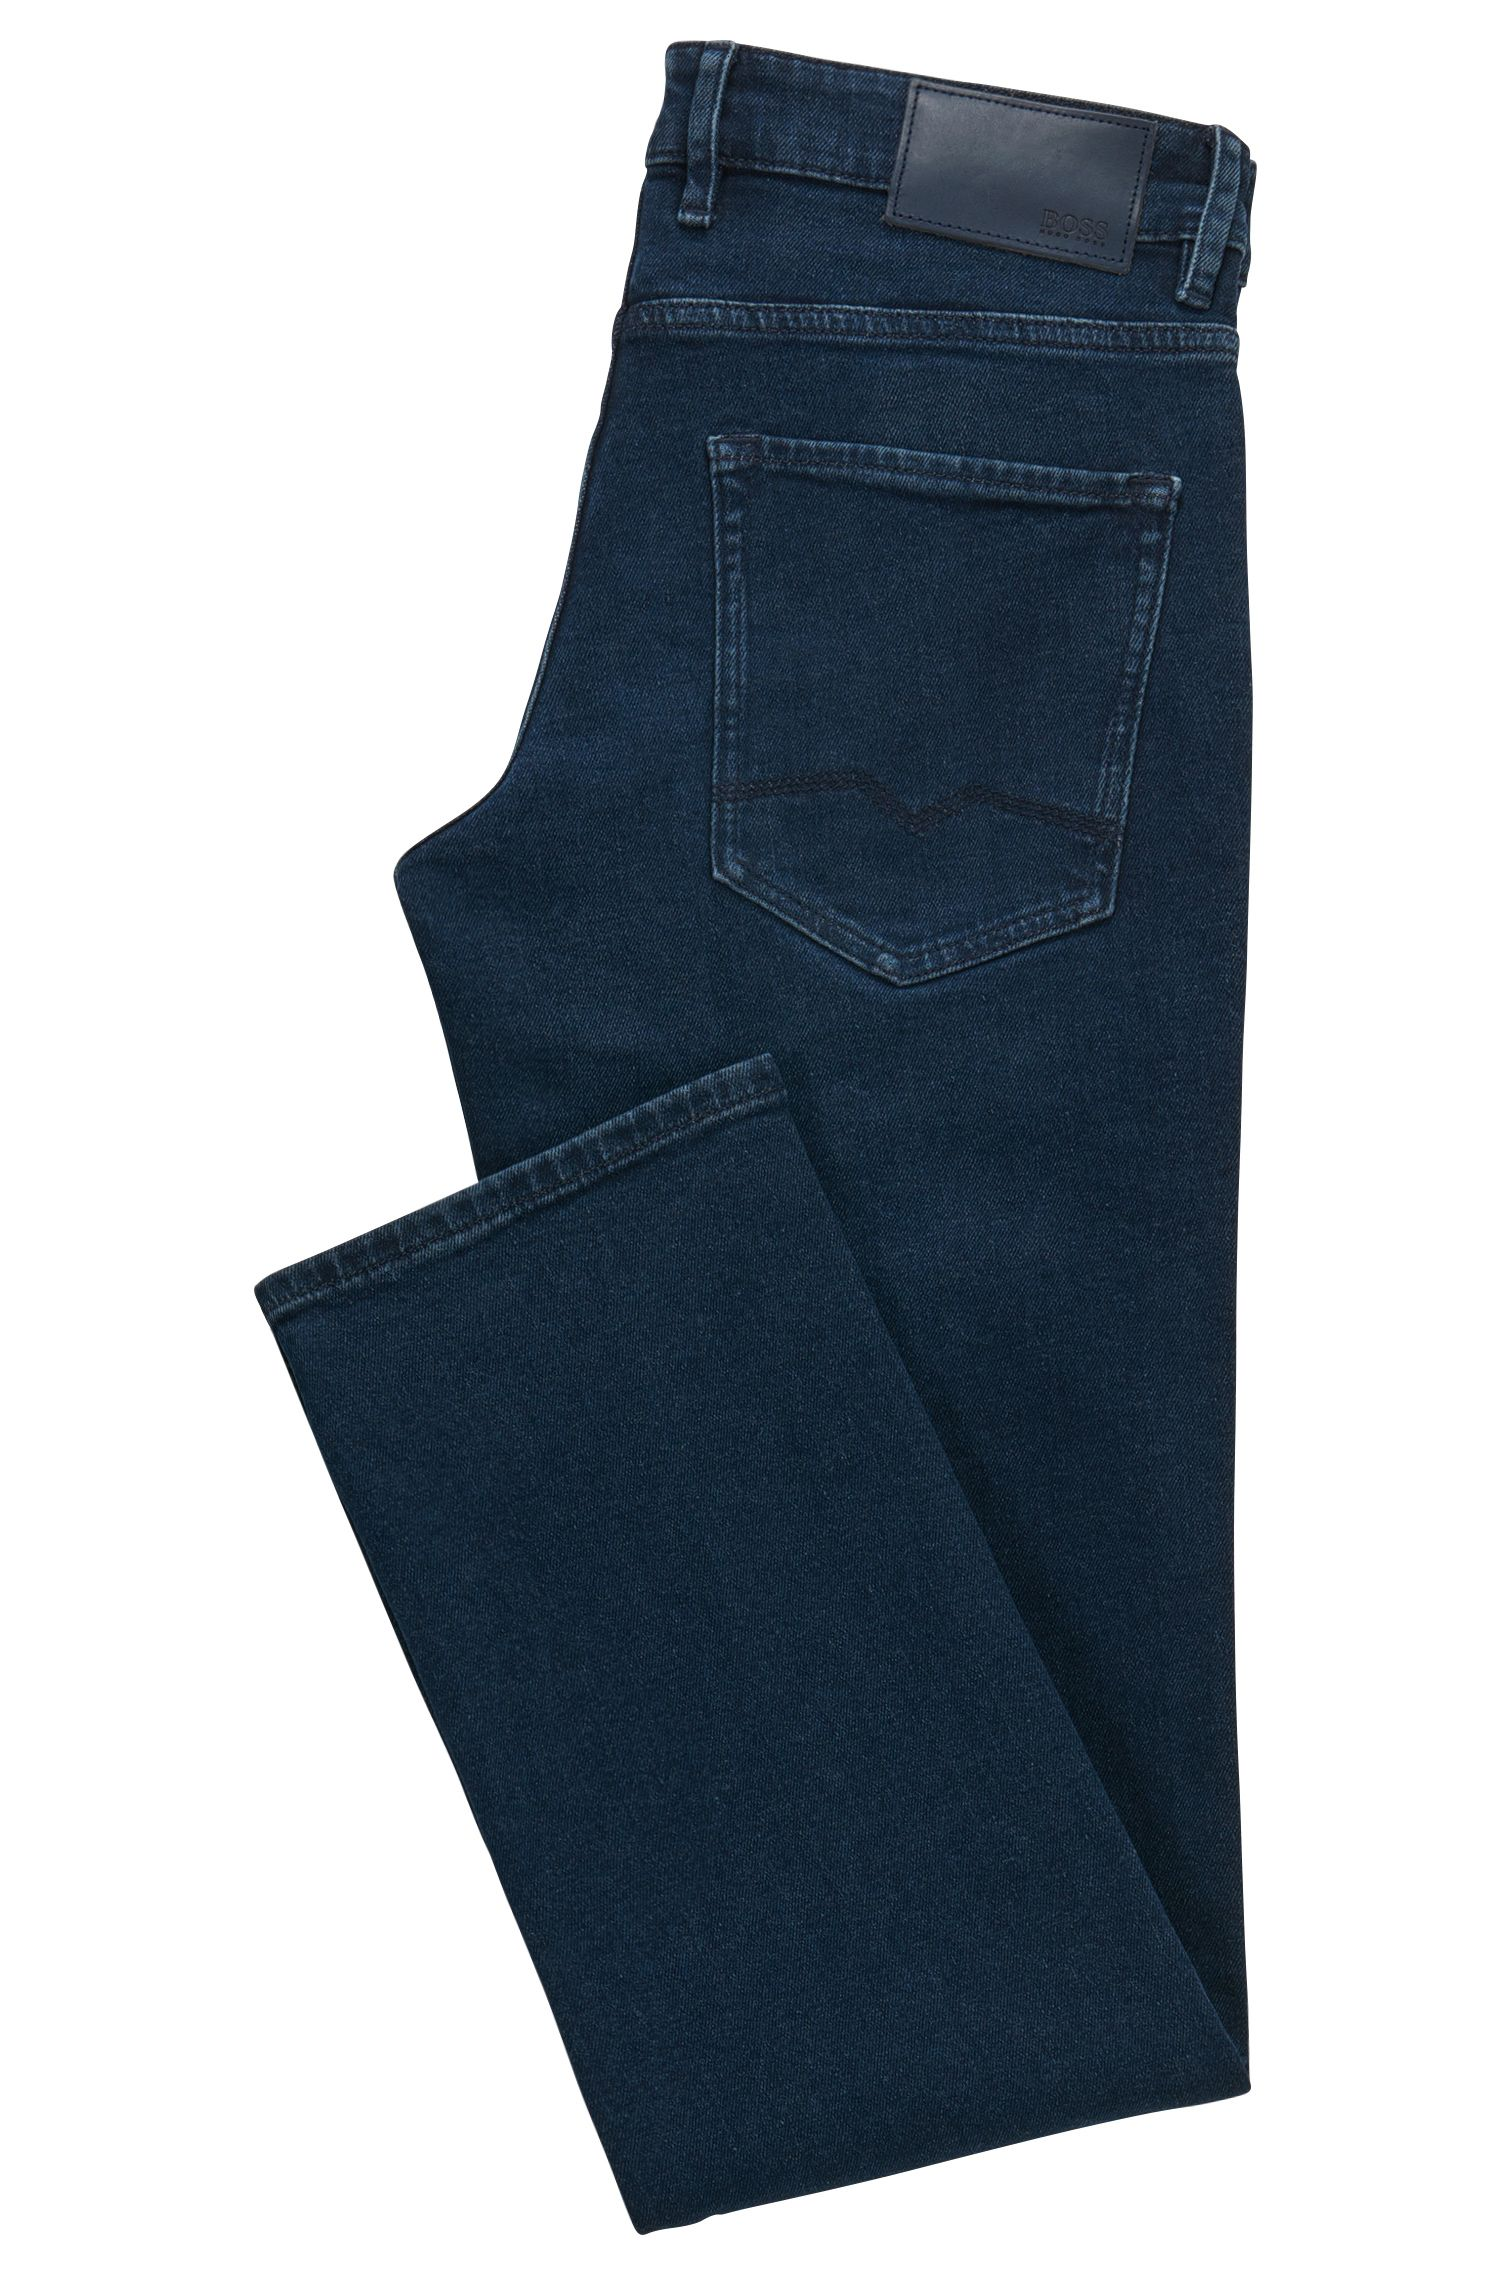 Jeans Regular Fit en denim traité, confortable grâce à la teneur en stretch